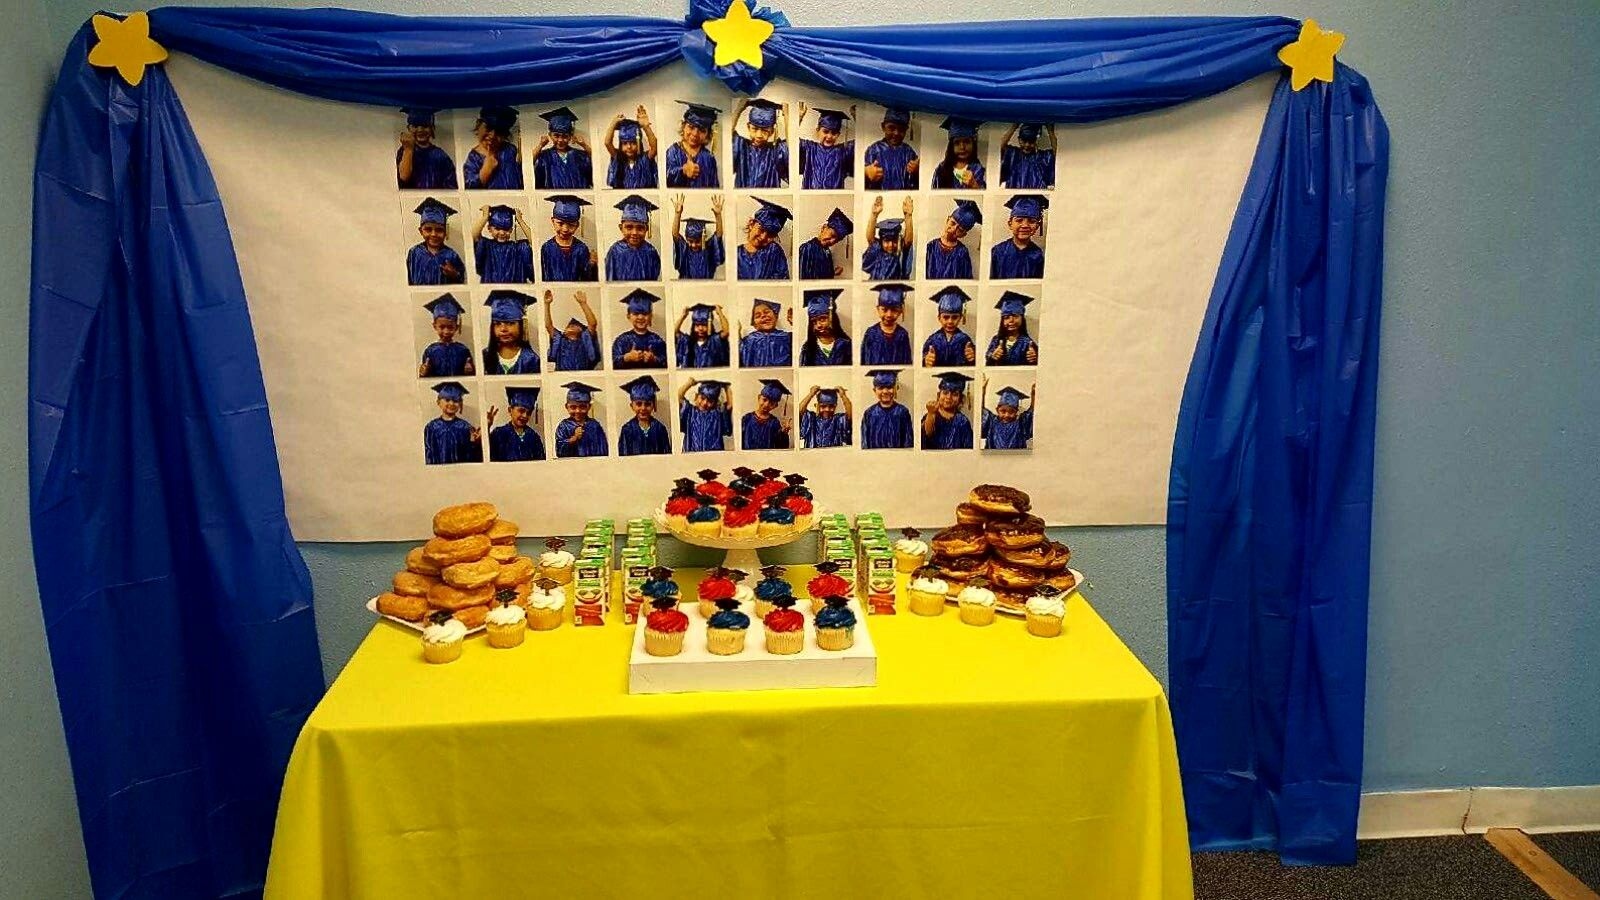 Simple preschool graduation refreshment table with picture collage took multiple pictures of - Kindergarten graduation decorations ...